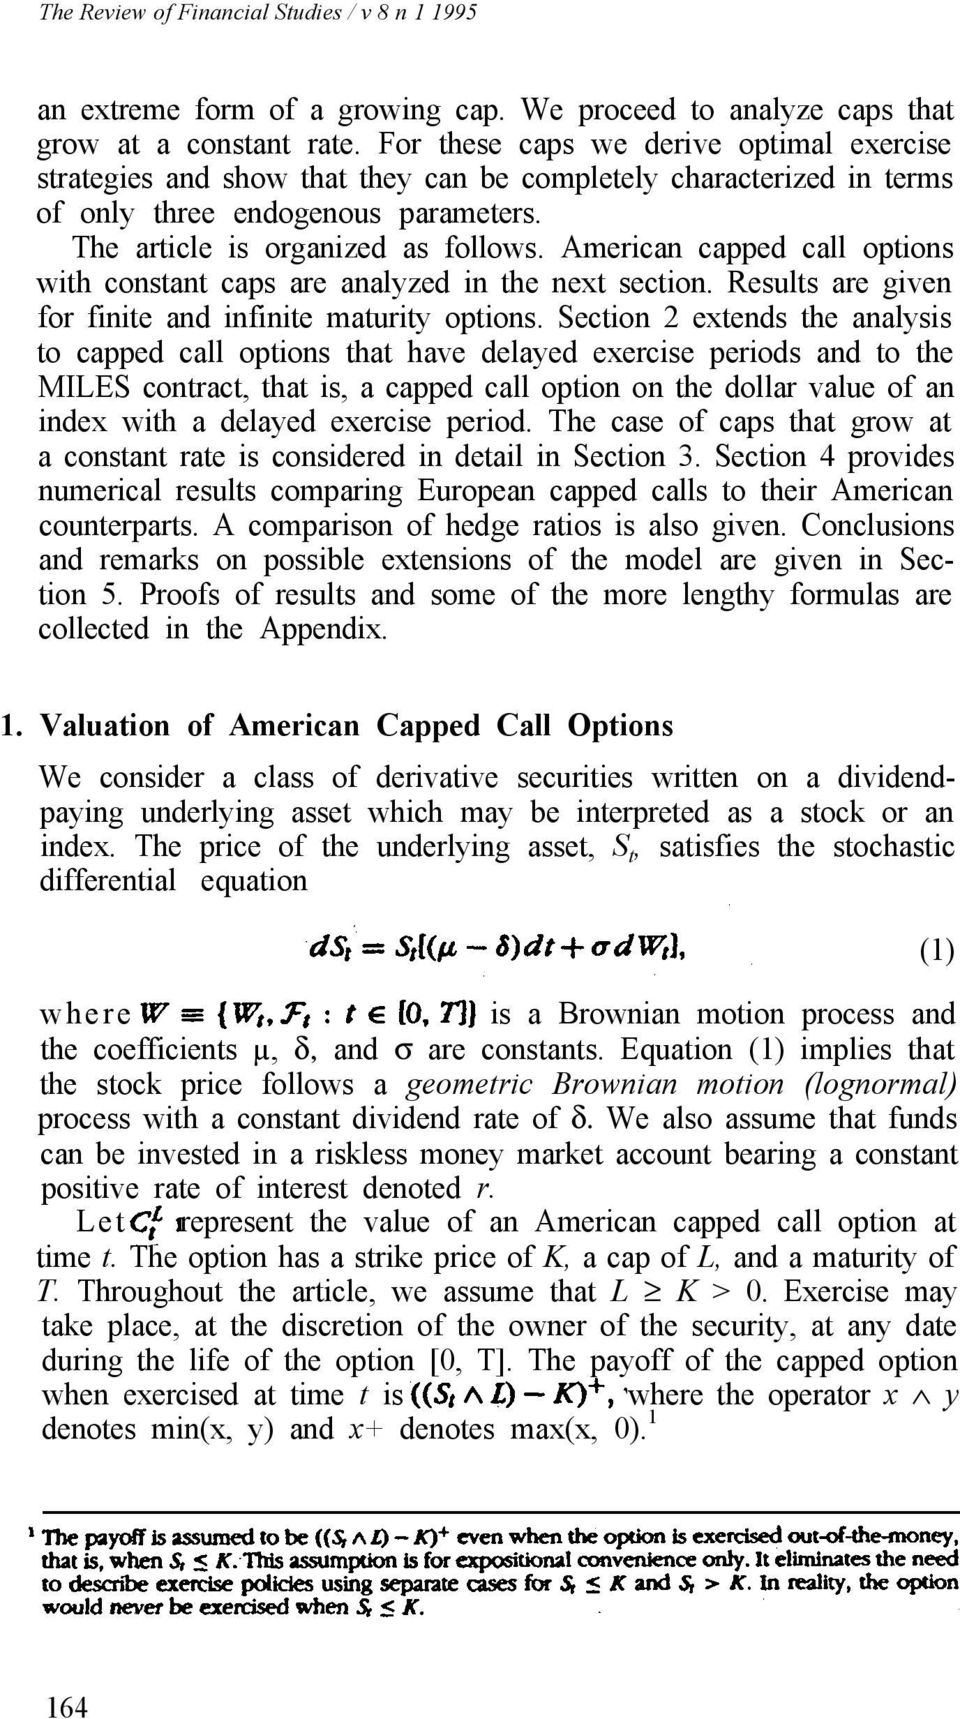 American capped call options with constant caps are analyzed in the next section. Results are given for finite and infinite maturity options.